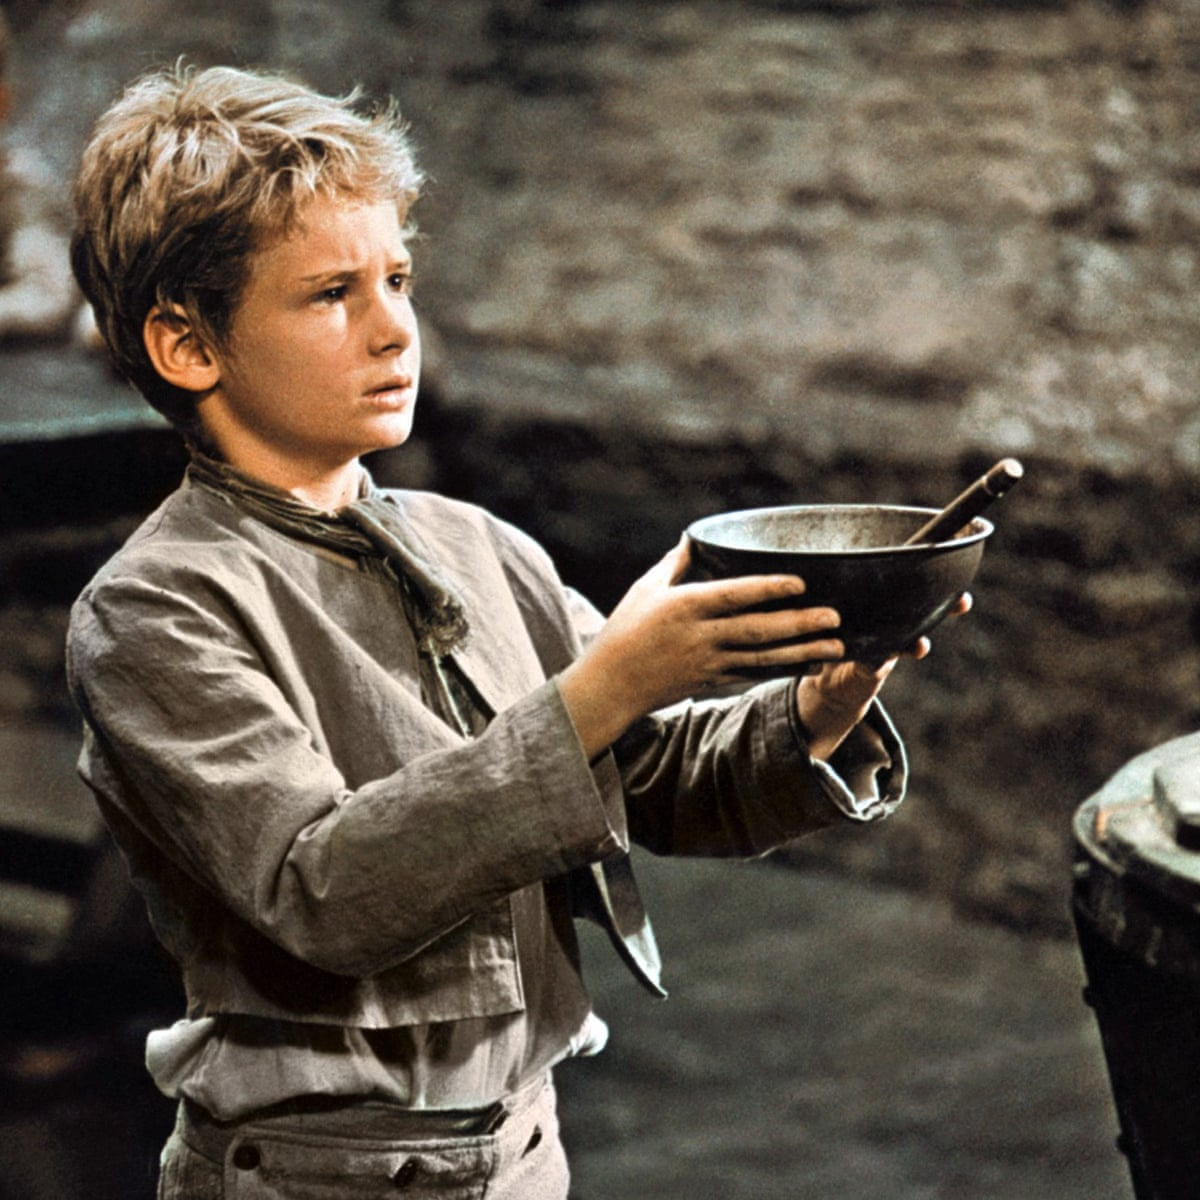 Oliver! review: 'more than a musical' - archive, 1968 | Film | The Guardian